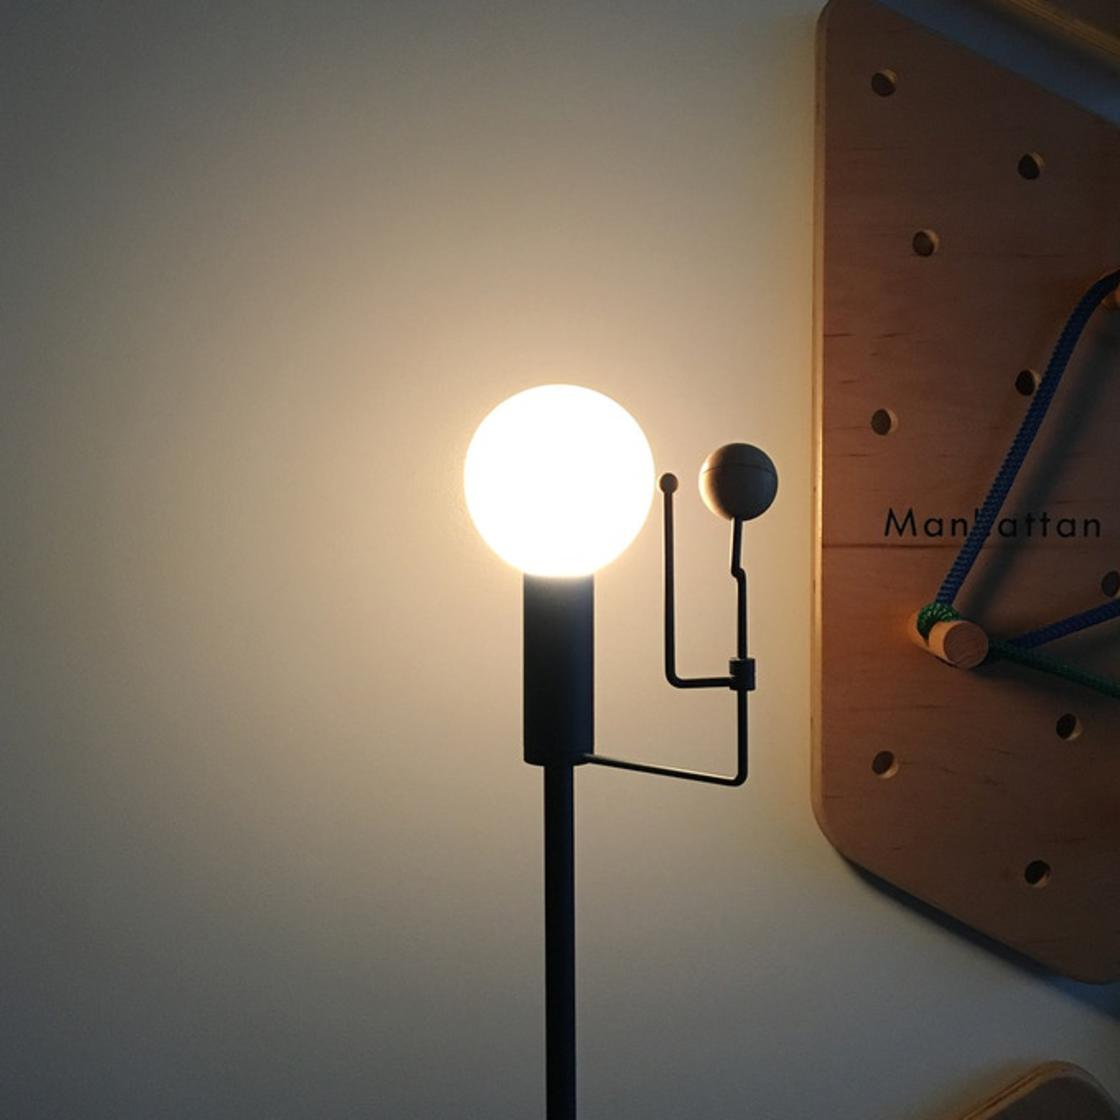 This lamp reproduces the movement of the Earth and the Moon around the Sun